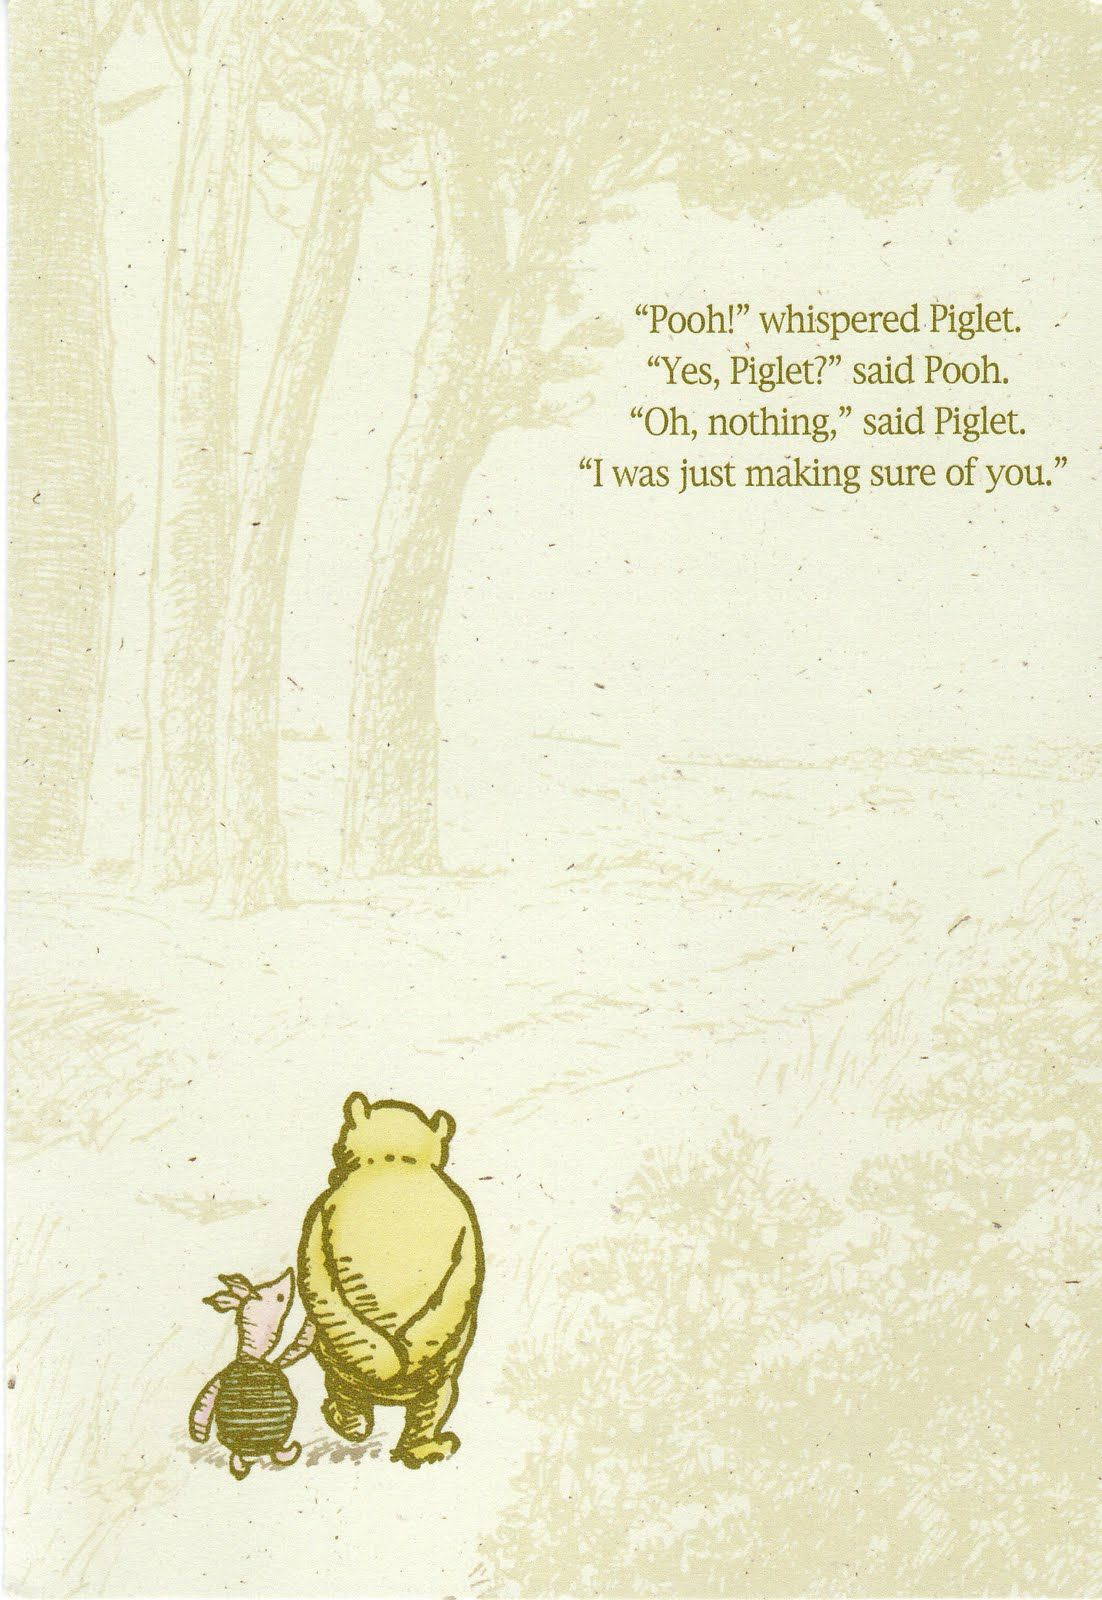 Best Winnie the Pooh Quotes - Winnie the Pooh Friendship and ...